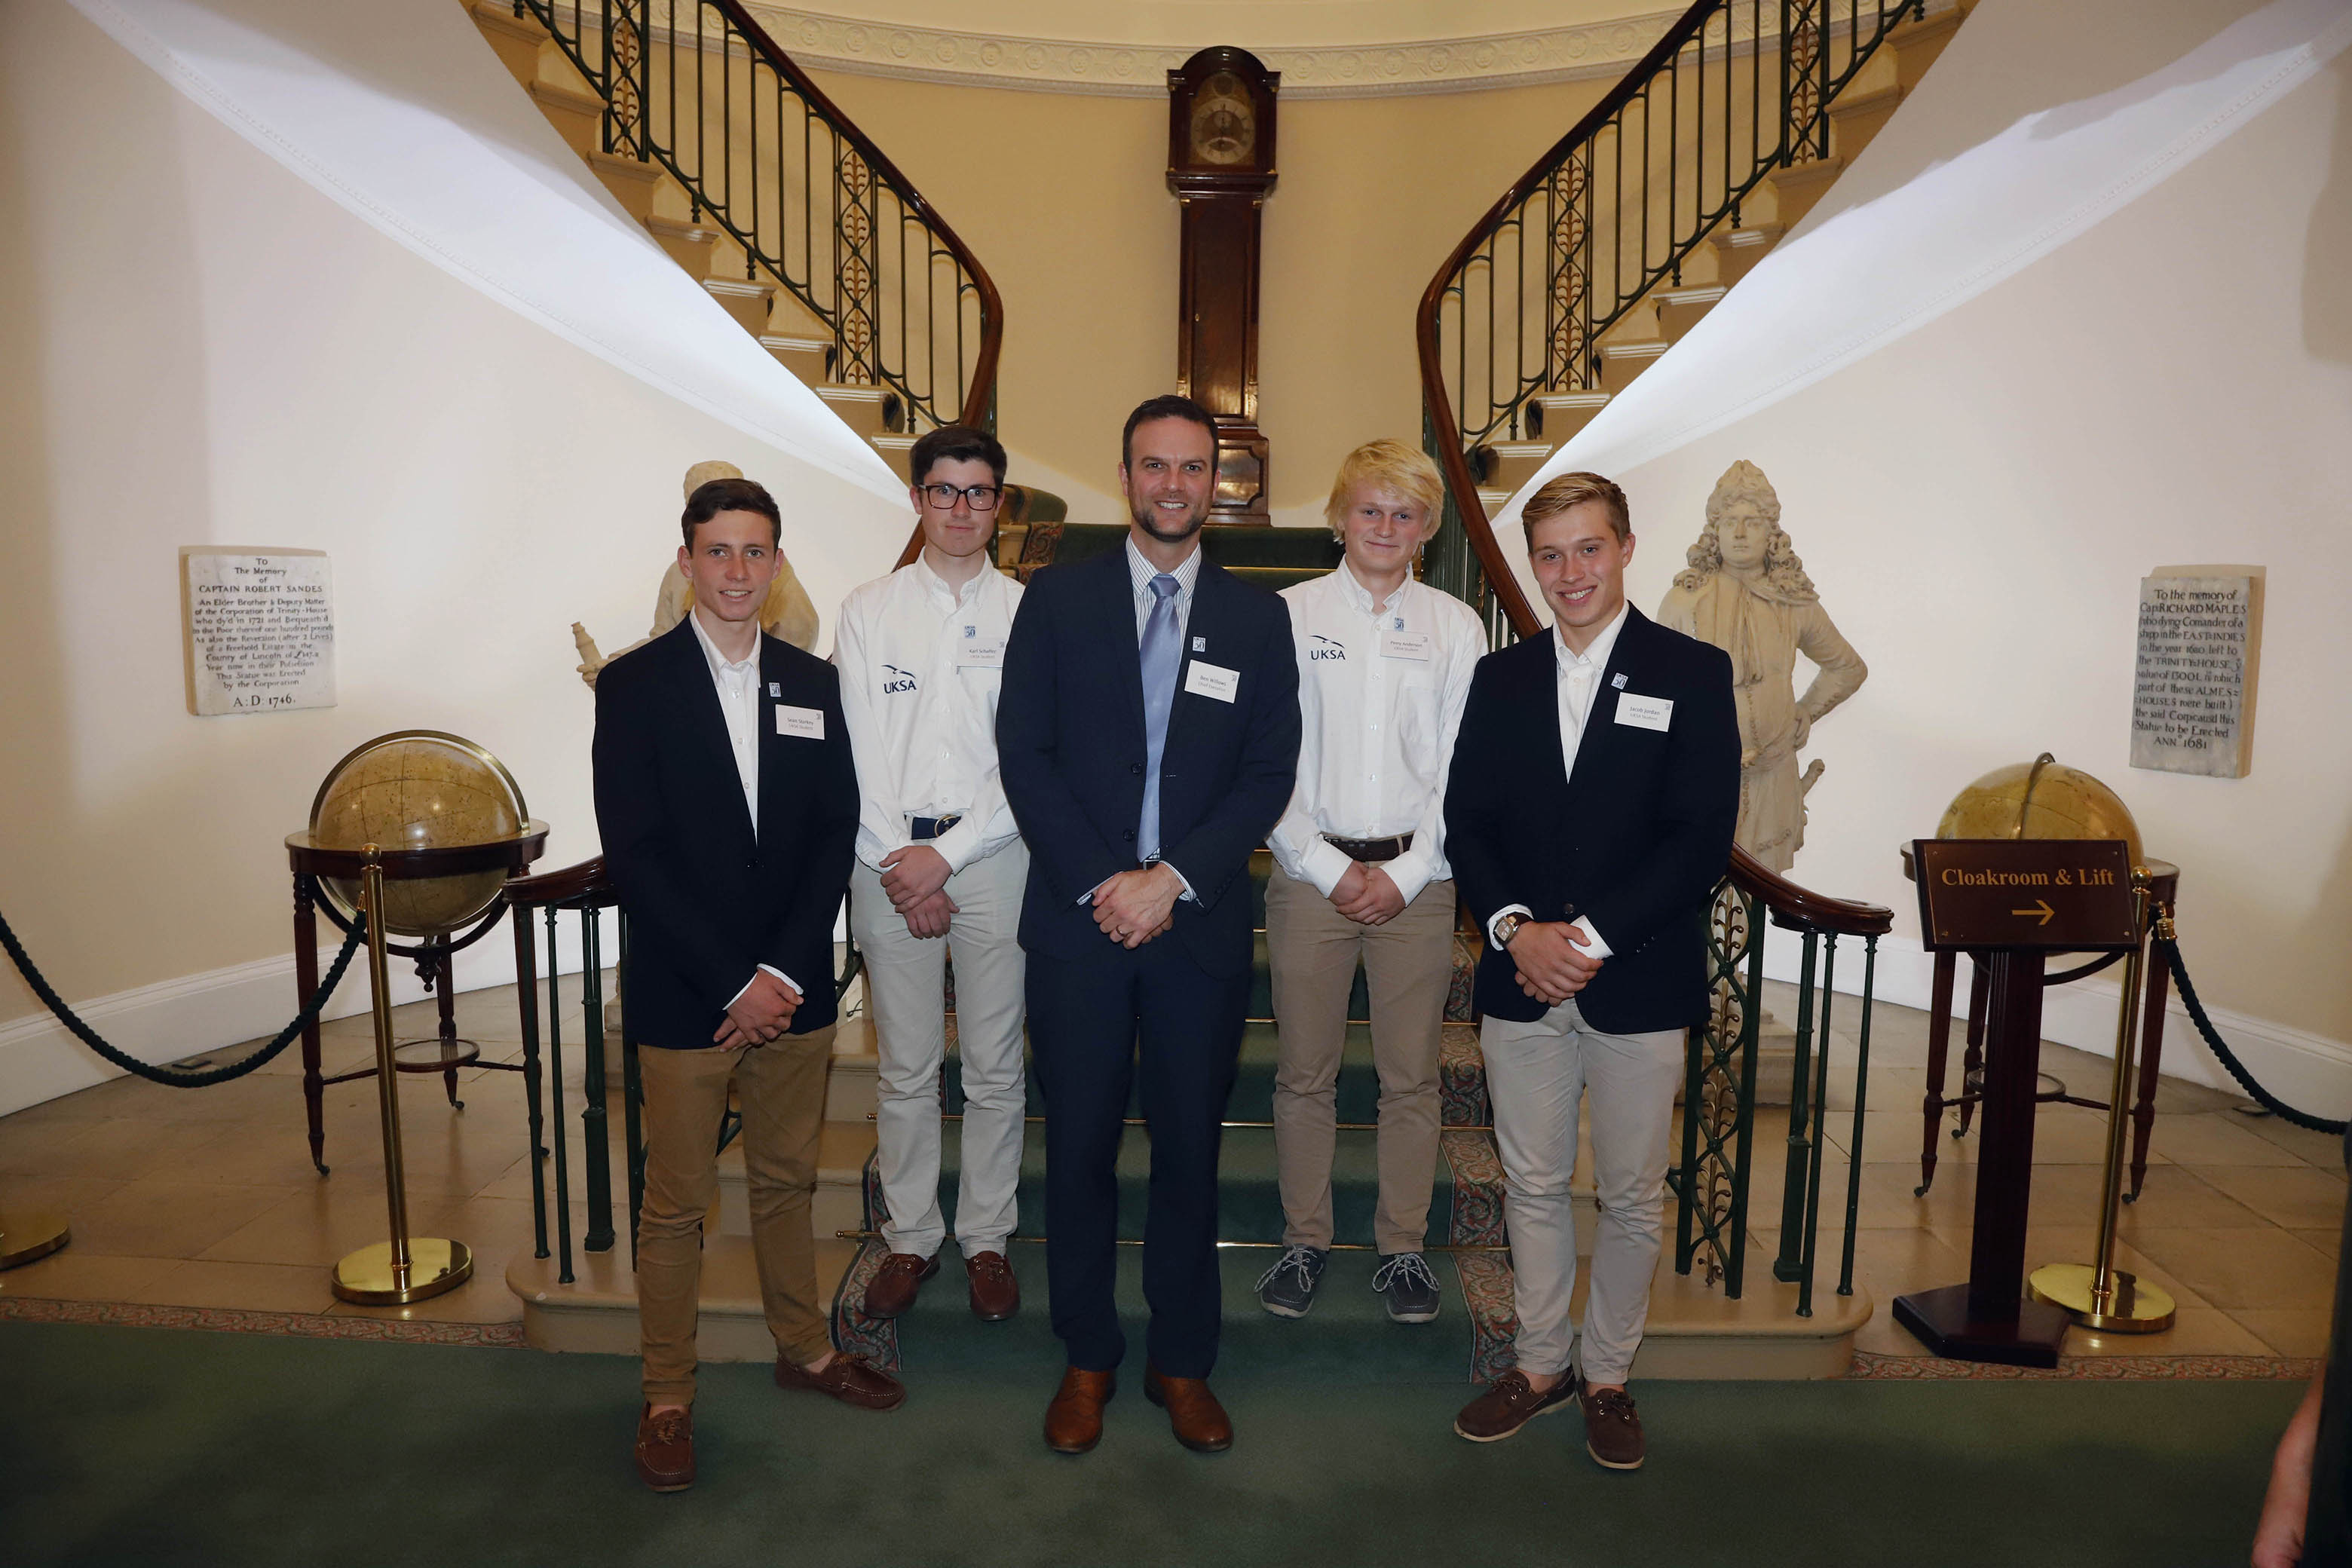 UKSA students Sean Starkey, Karl Schaffer, Perry Anderson and Jacob Jordan with CEO Ben Willows (centre) at UKSA's 30th anniversary celebration at Trinity House.